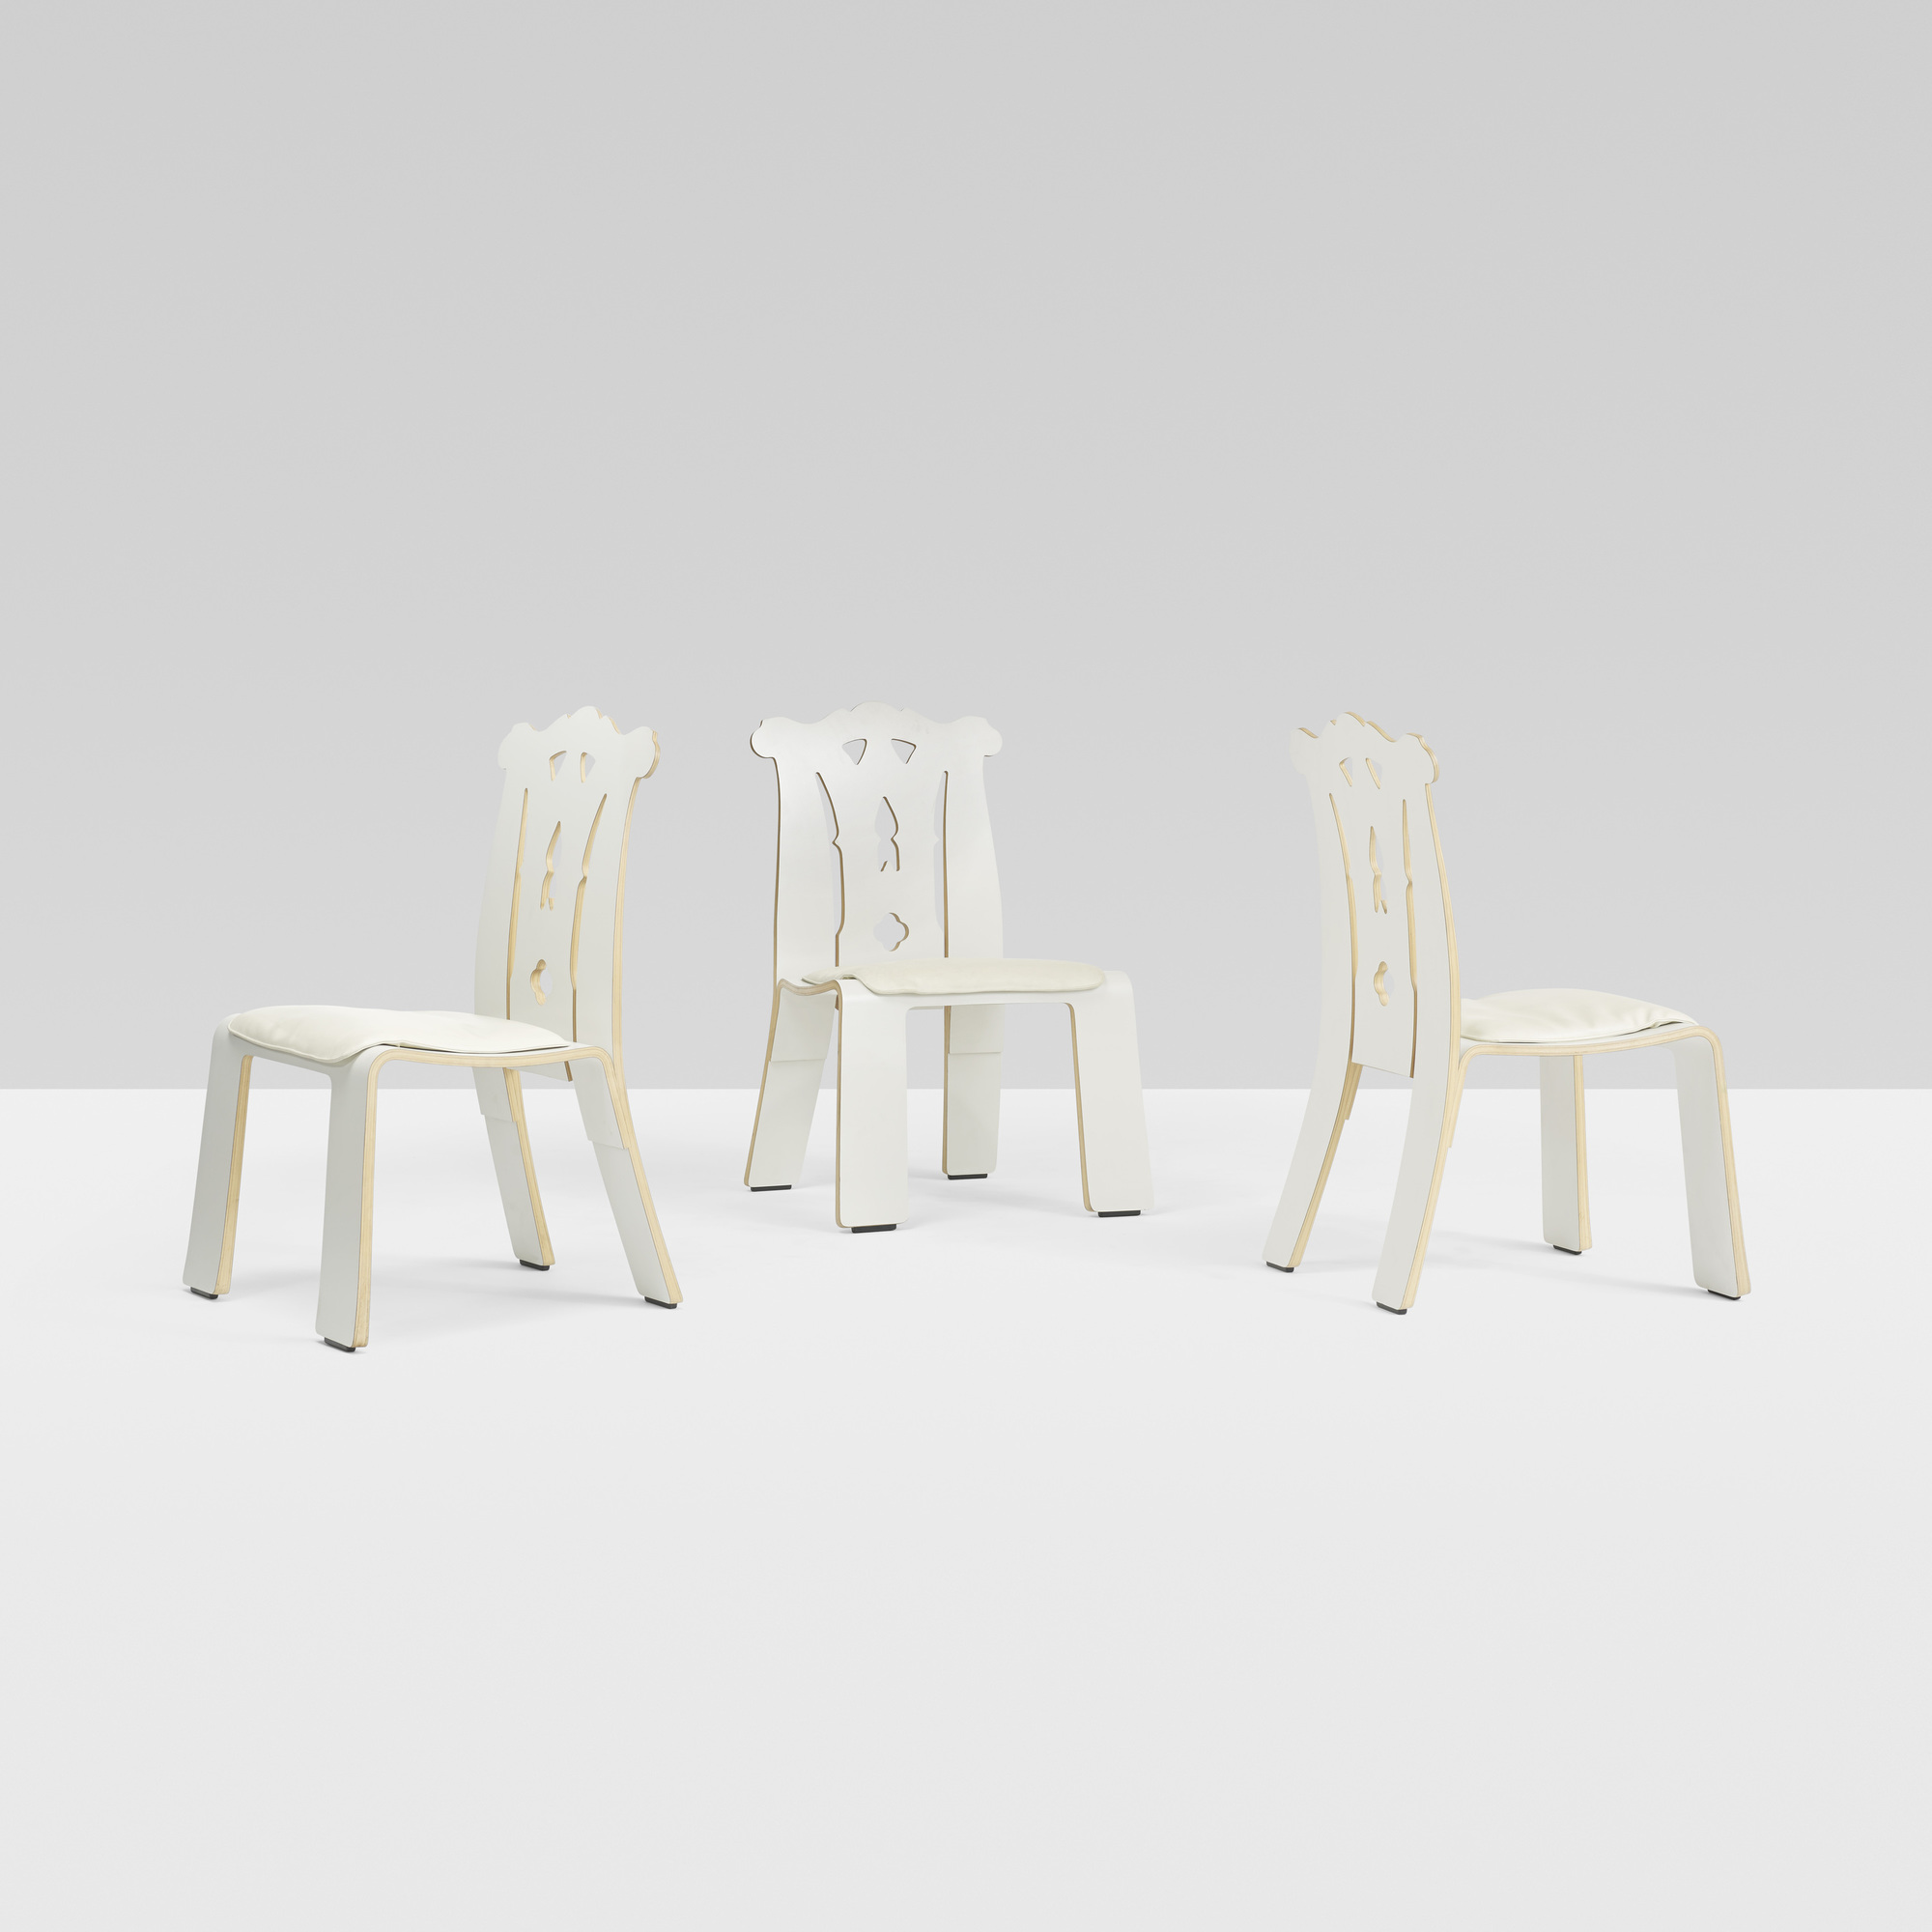 281: Robert Venturi / Chippendale chairs, set of six (3 of 4)